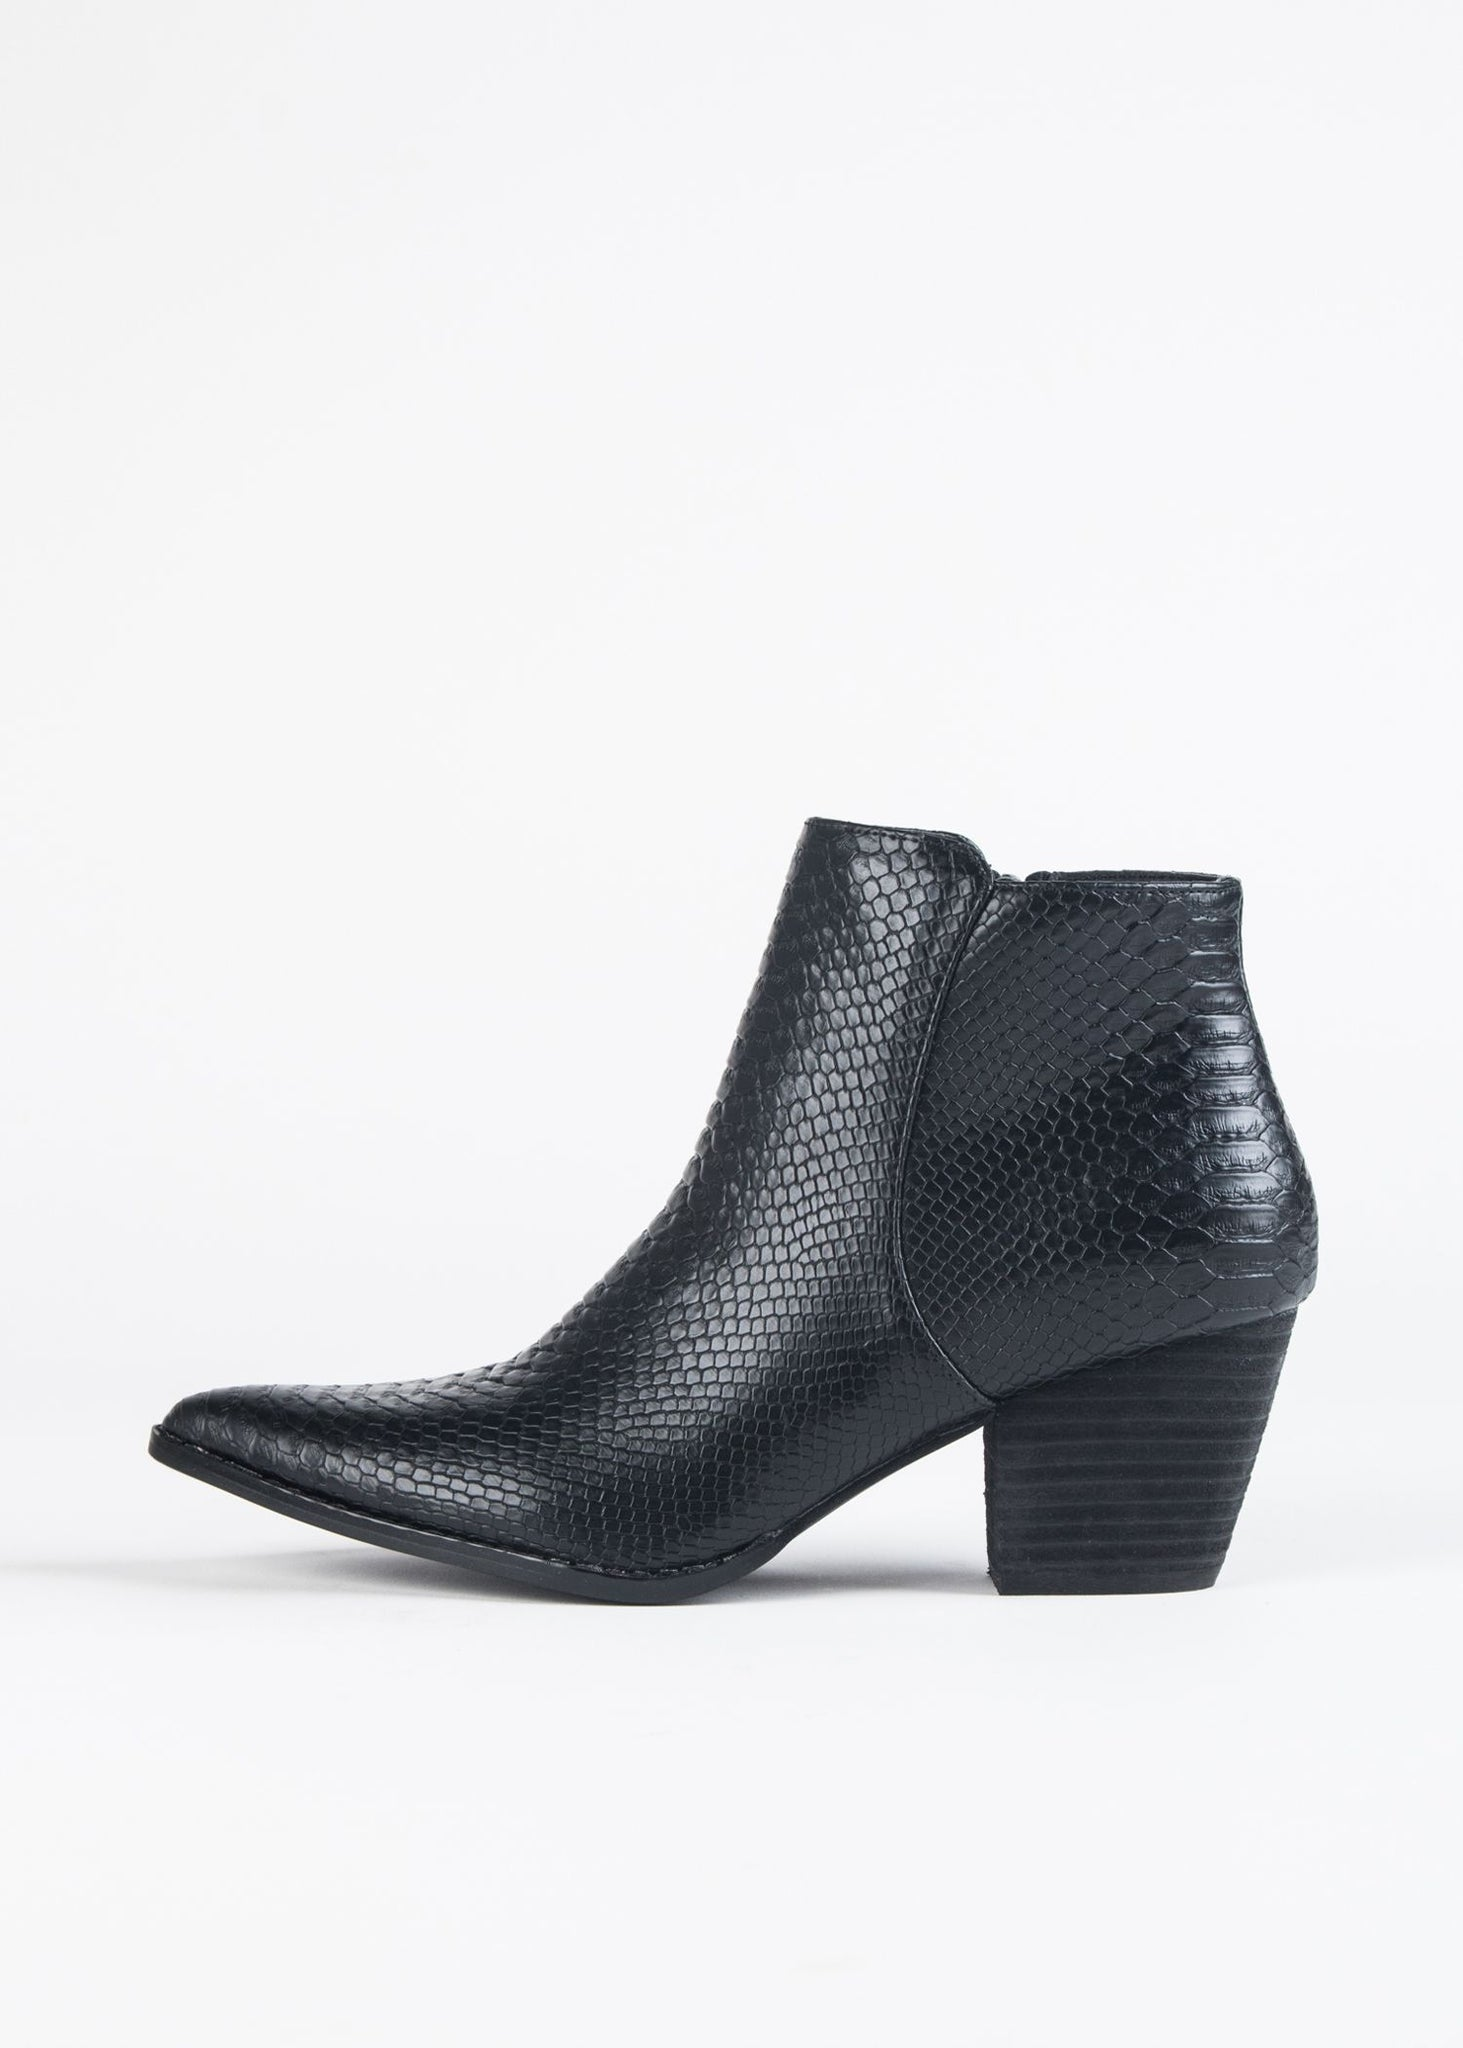 ASTORIA SNAKESKIN BOOT